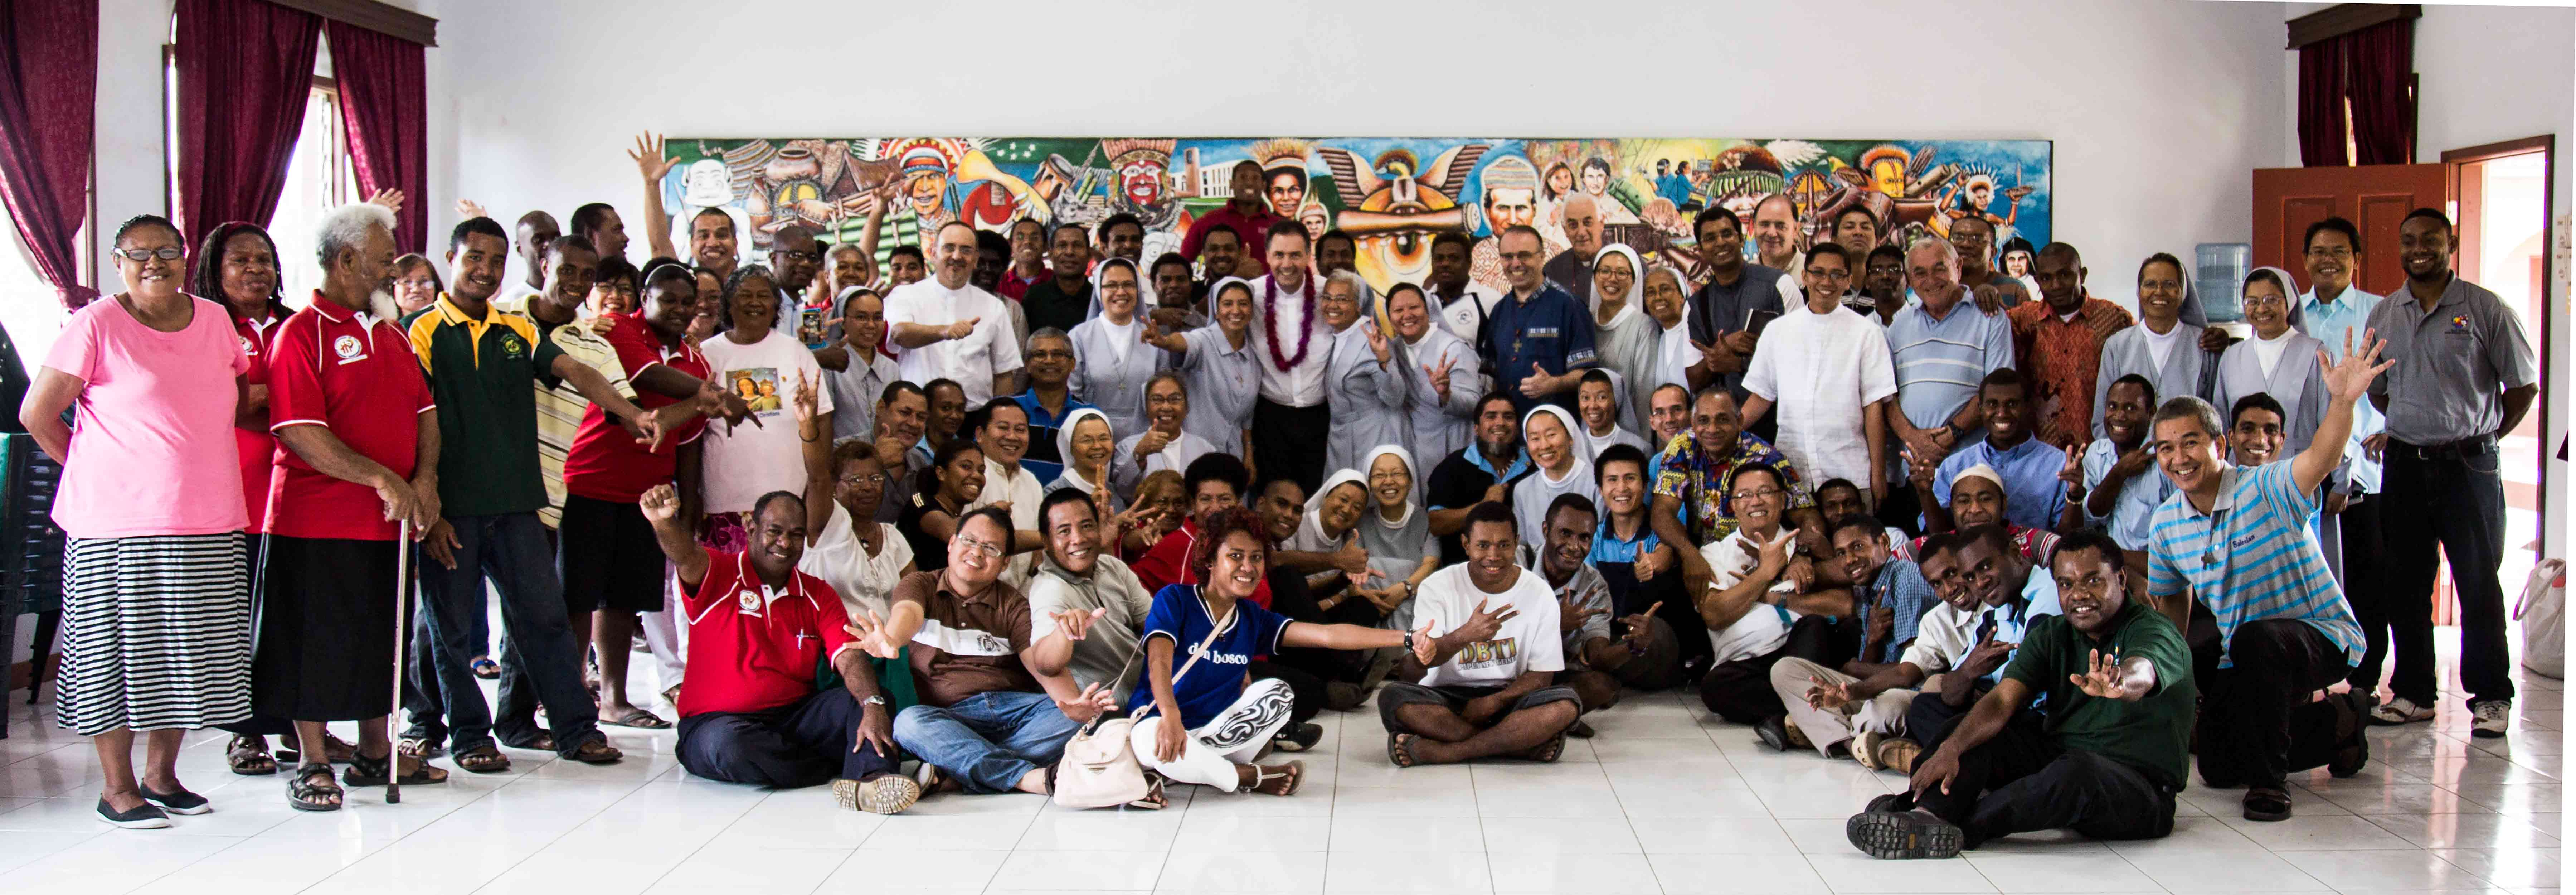 PNG-last day meeting RM-salesian family open forum.jpg